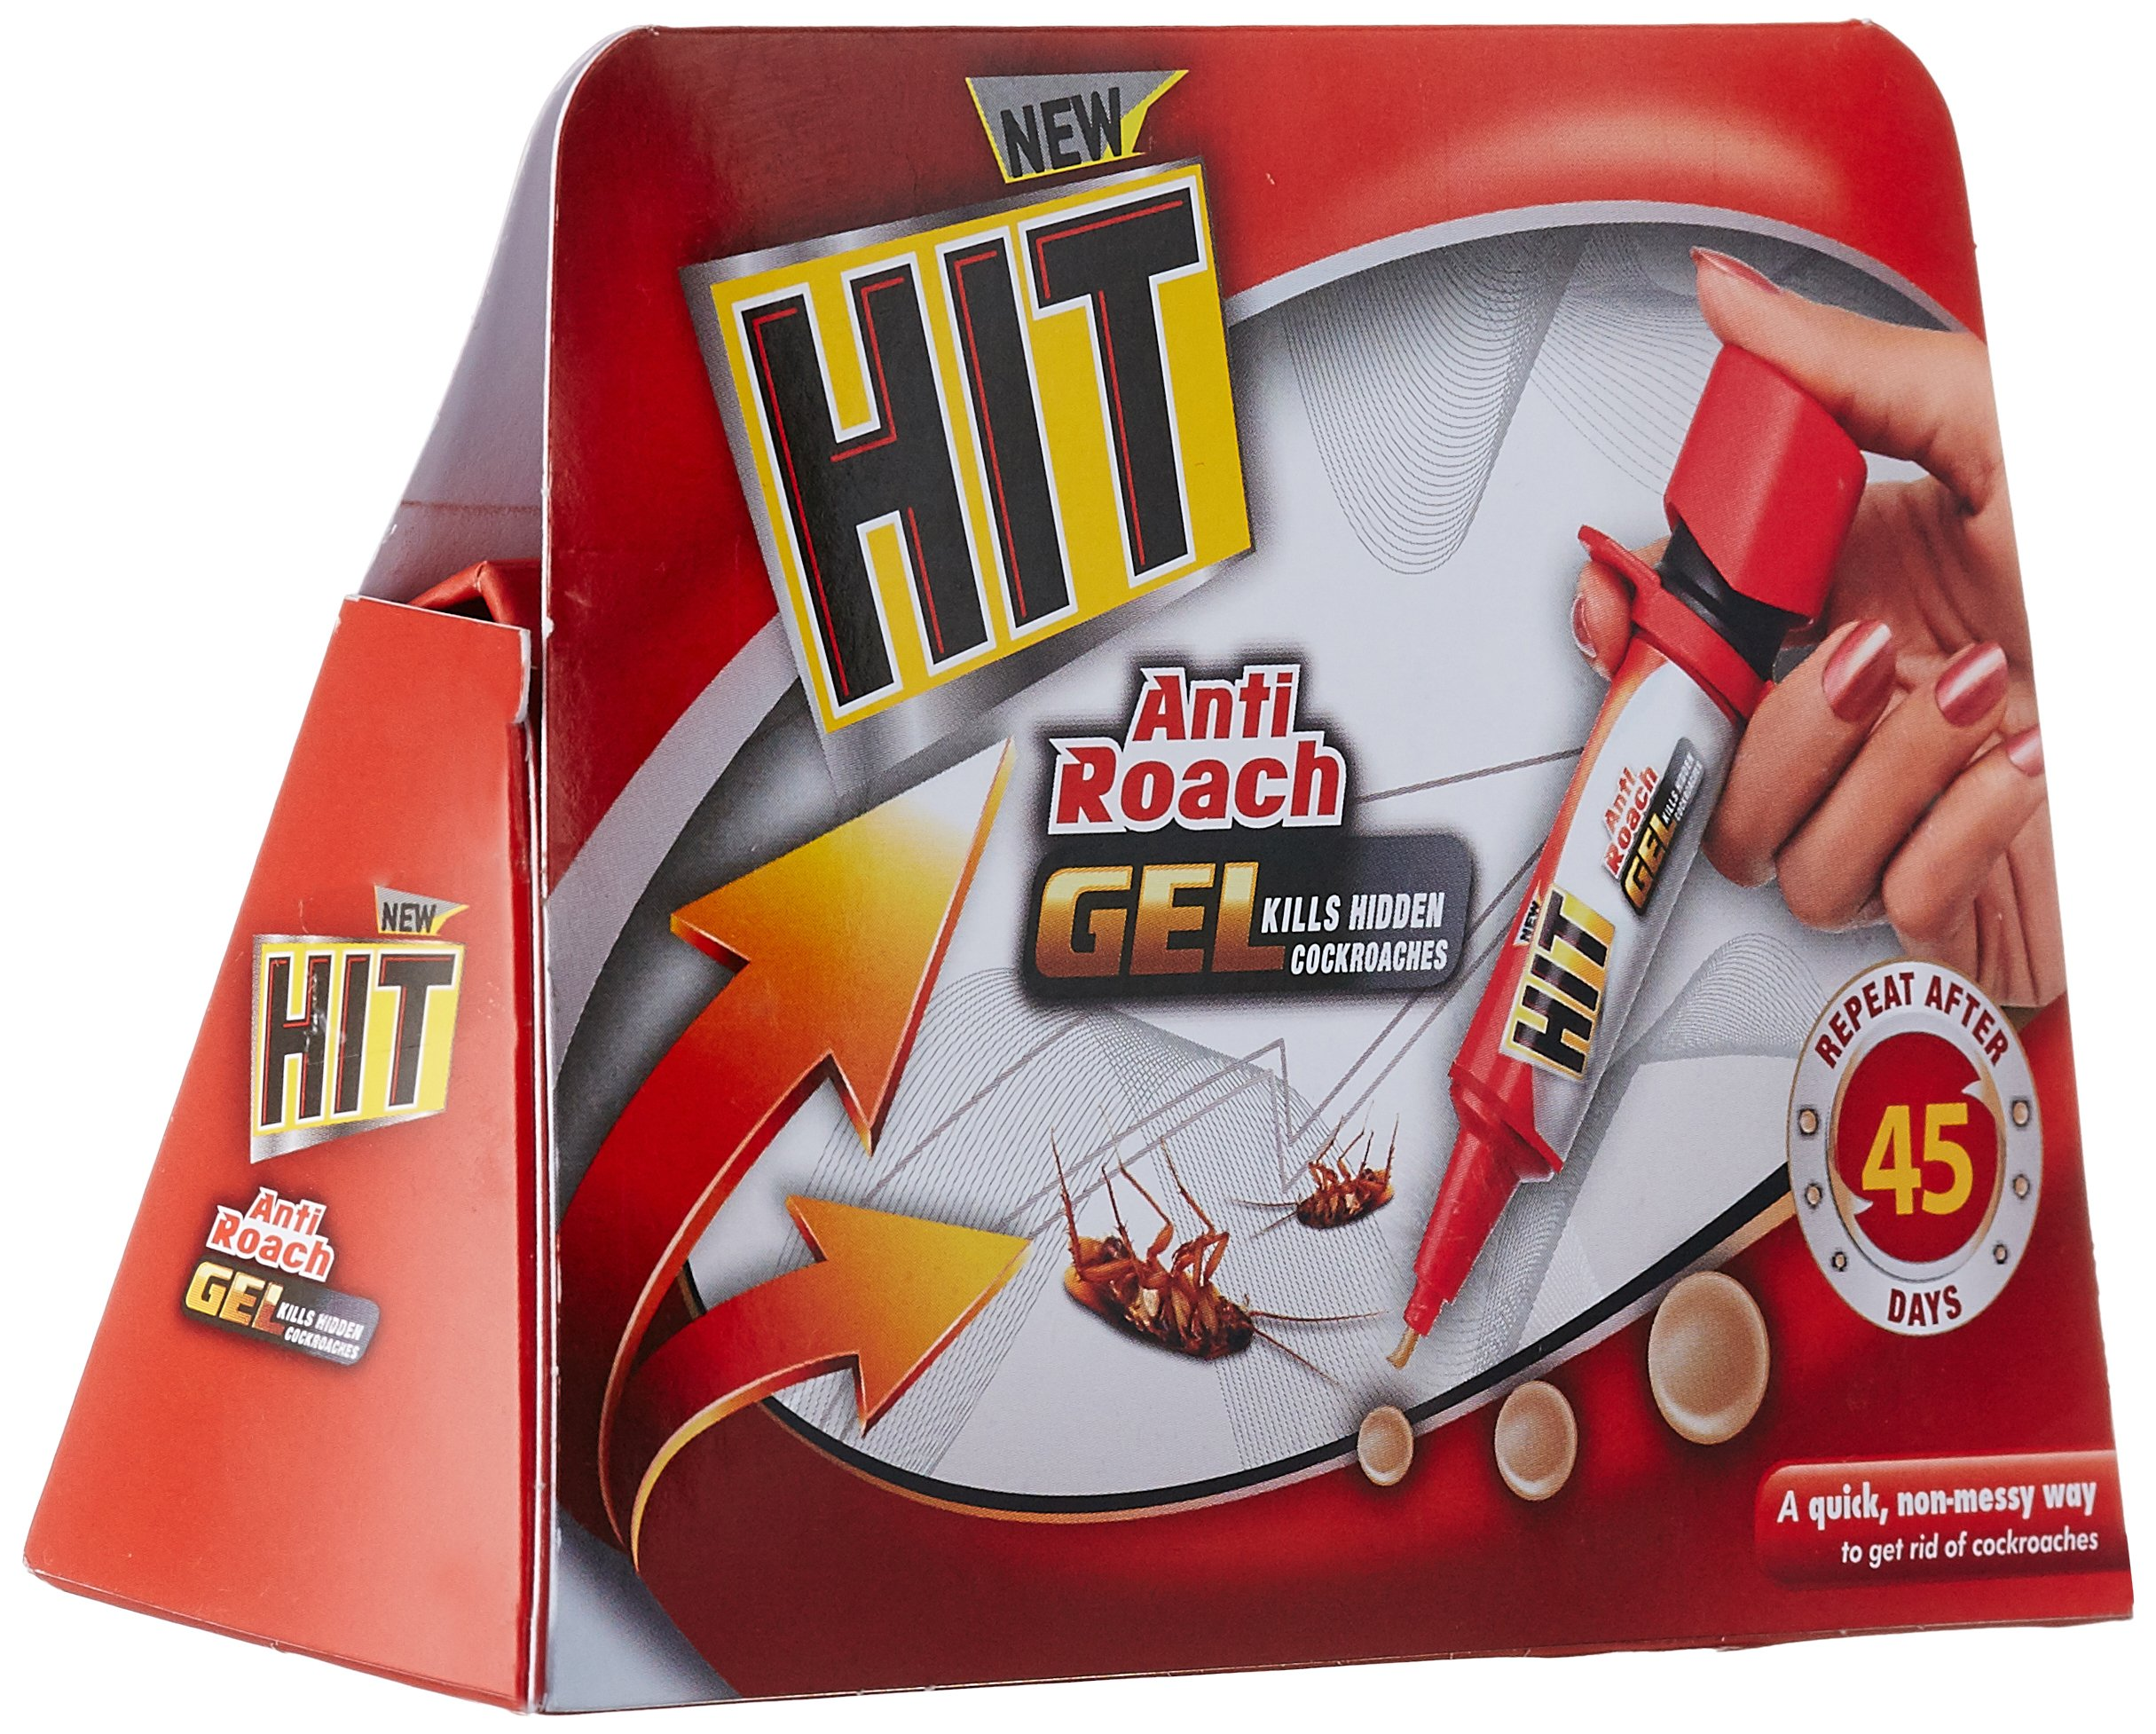 HIT Anti Roach Gel product image